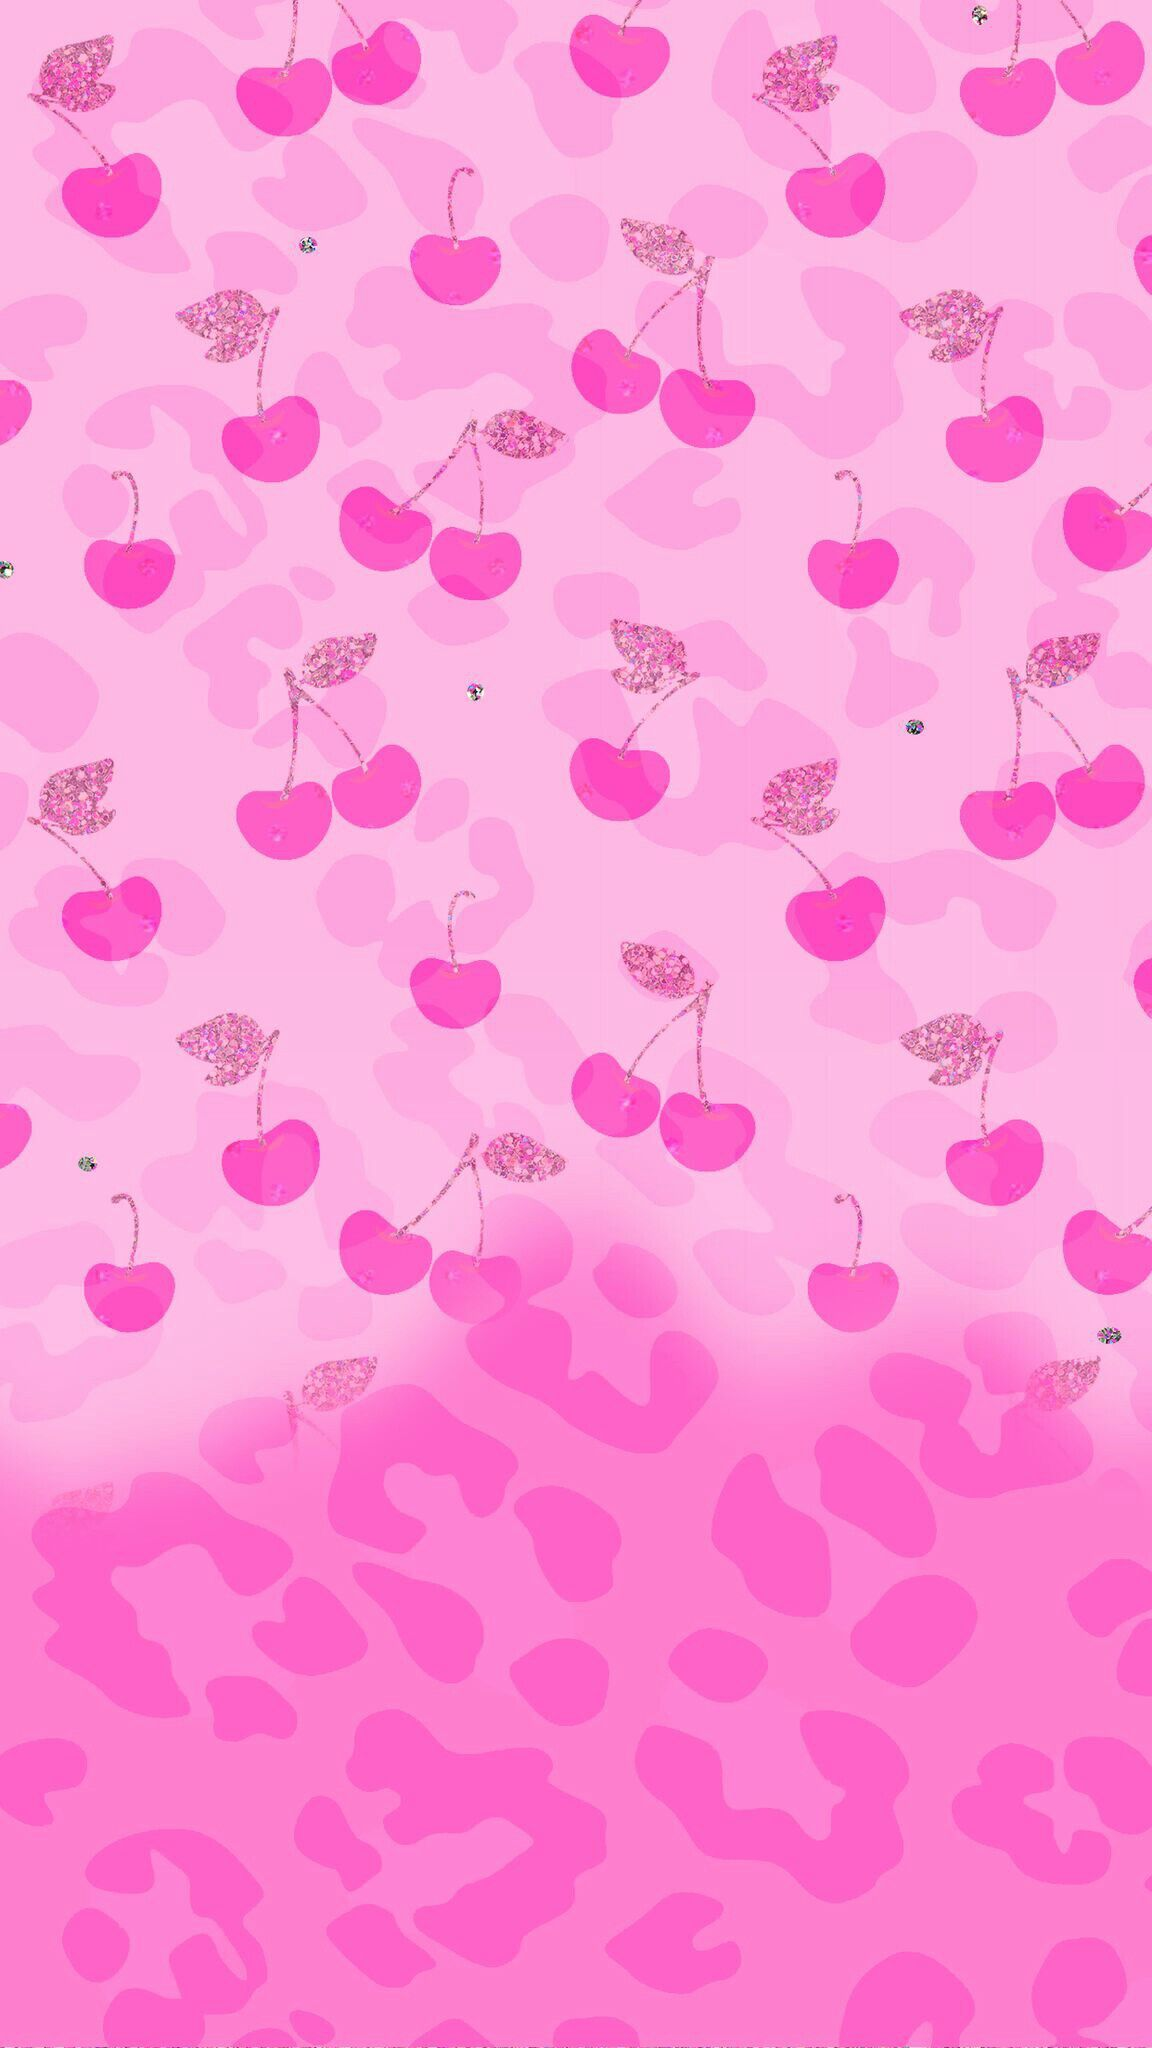 iphone backgrounds wallpaper backgrounds iphone wallpapers hello kitty wallpaper pink walls animal prints cherries cute backgrounds wallpapers